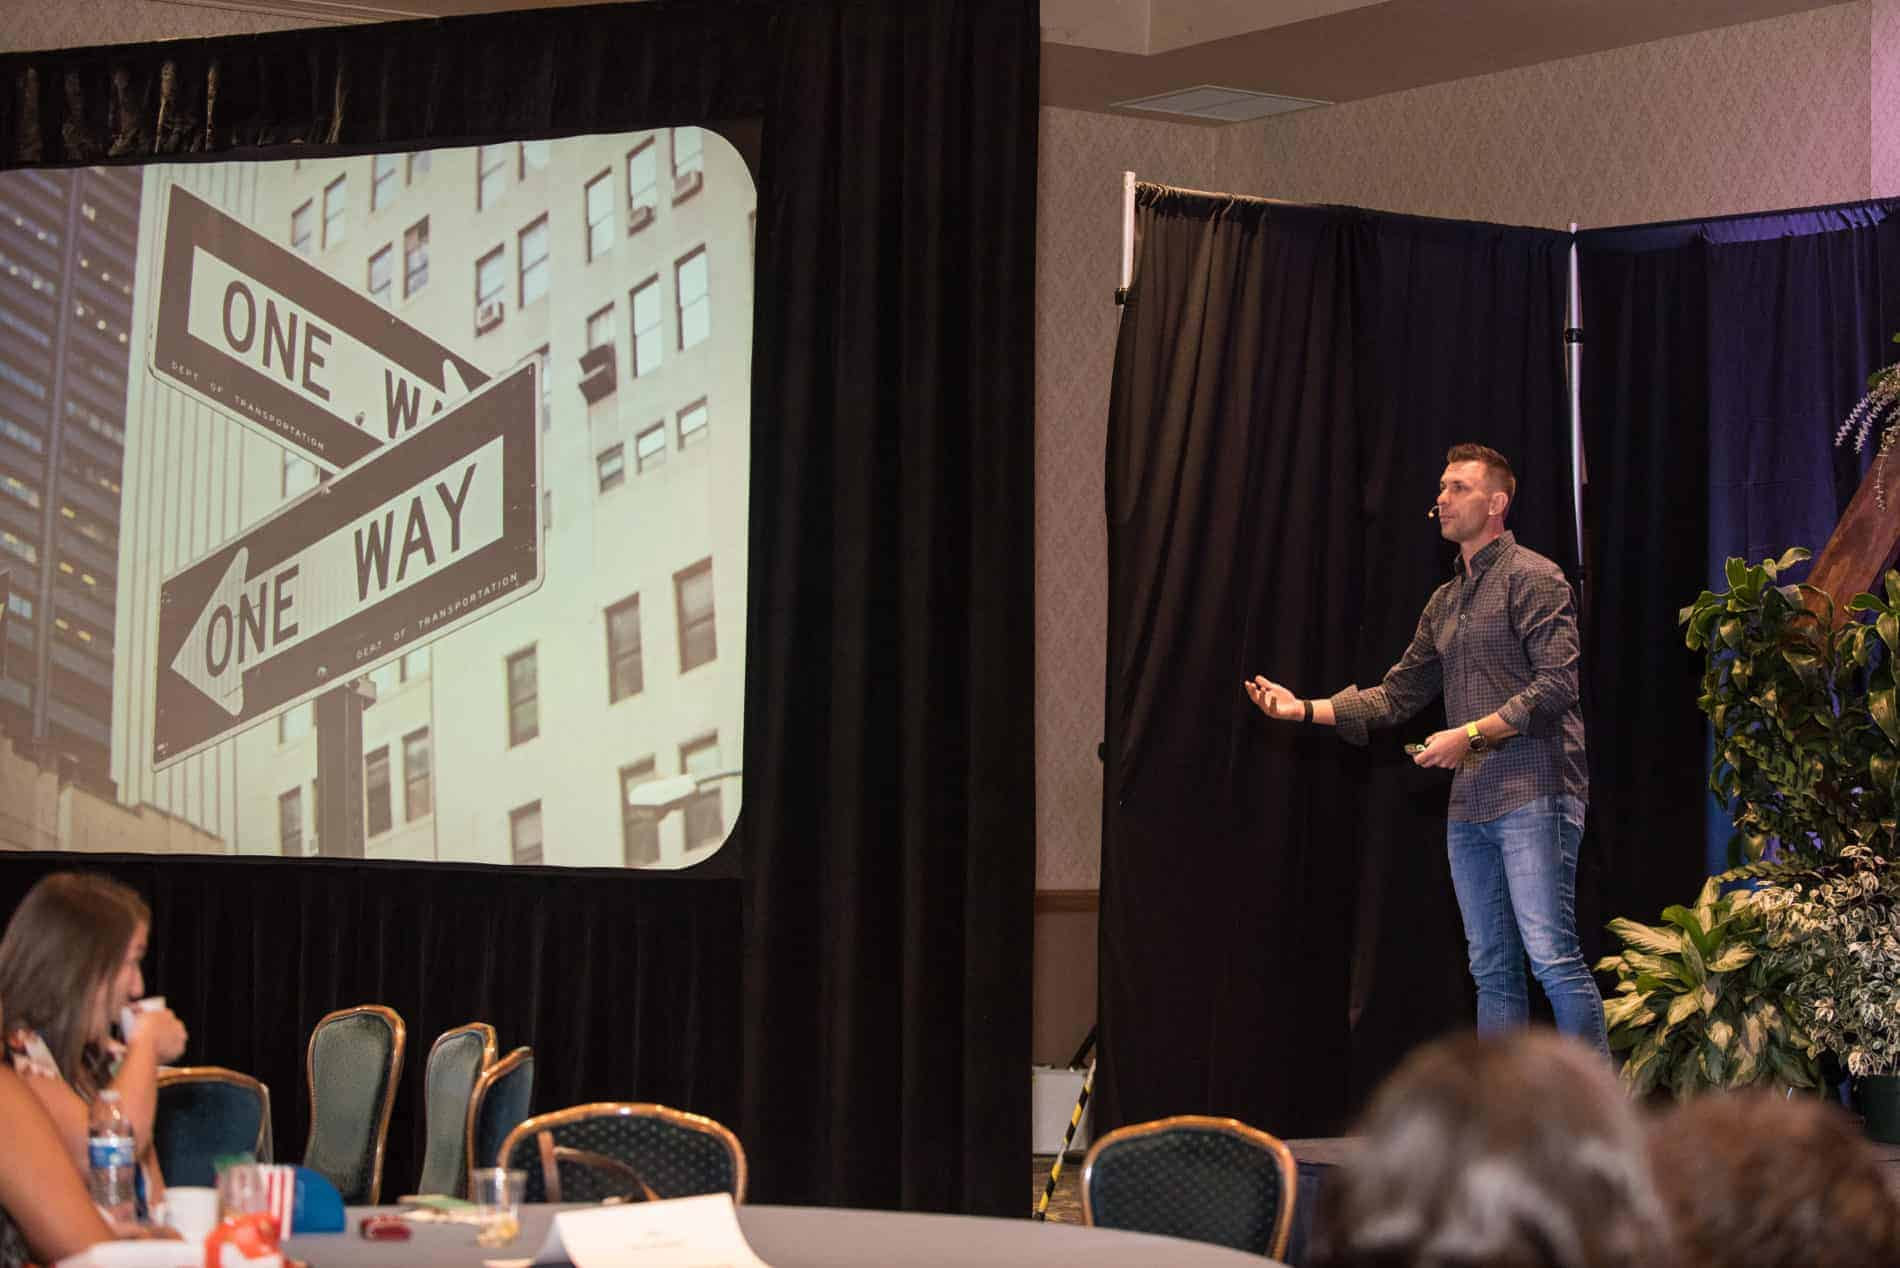 Ambitious Adventures CEO Greg Rollett Speaking at CFWA The Summit Conference